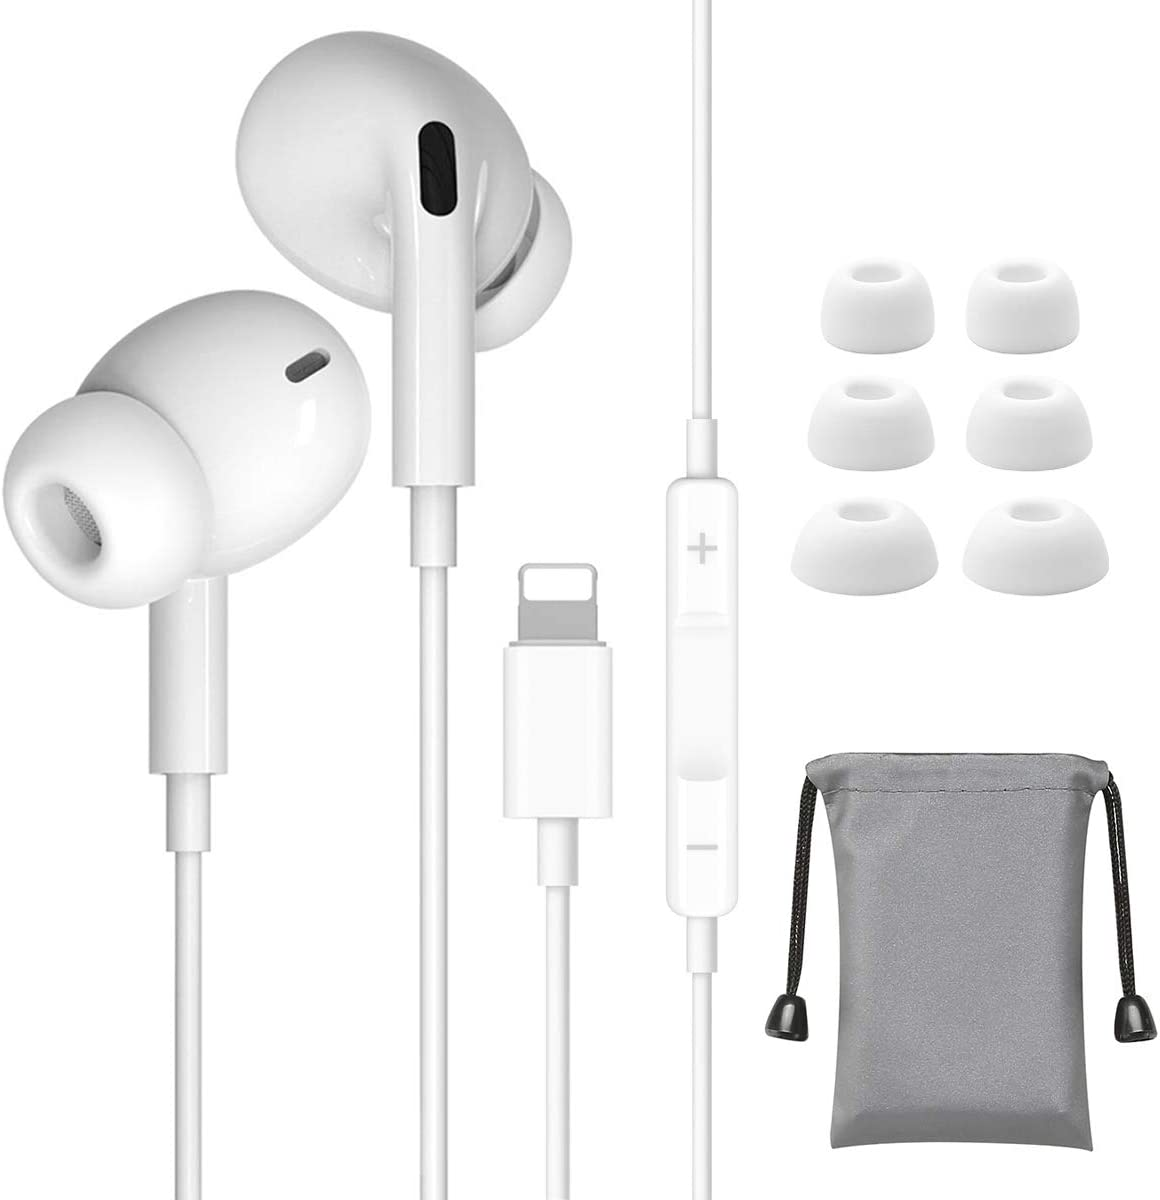 Earphones for iPhone, In Ear Headphones for iPhone 7 Noise Isolating Stereo Earbuds with Mic and Volume Control Compatible with iPhone 1111 Pro